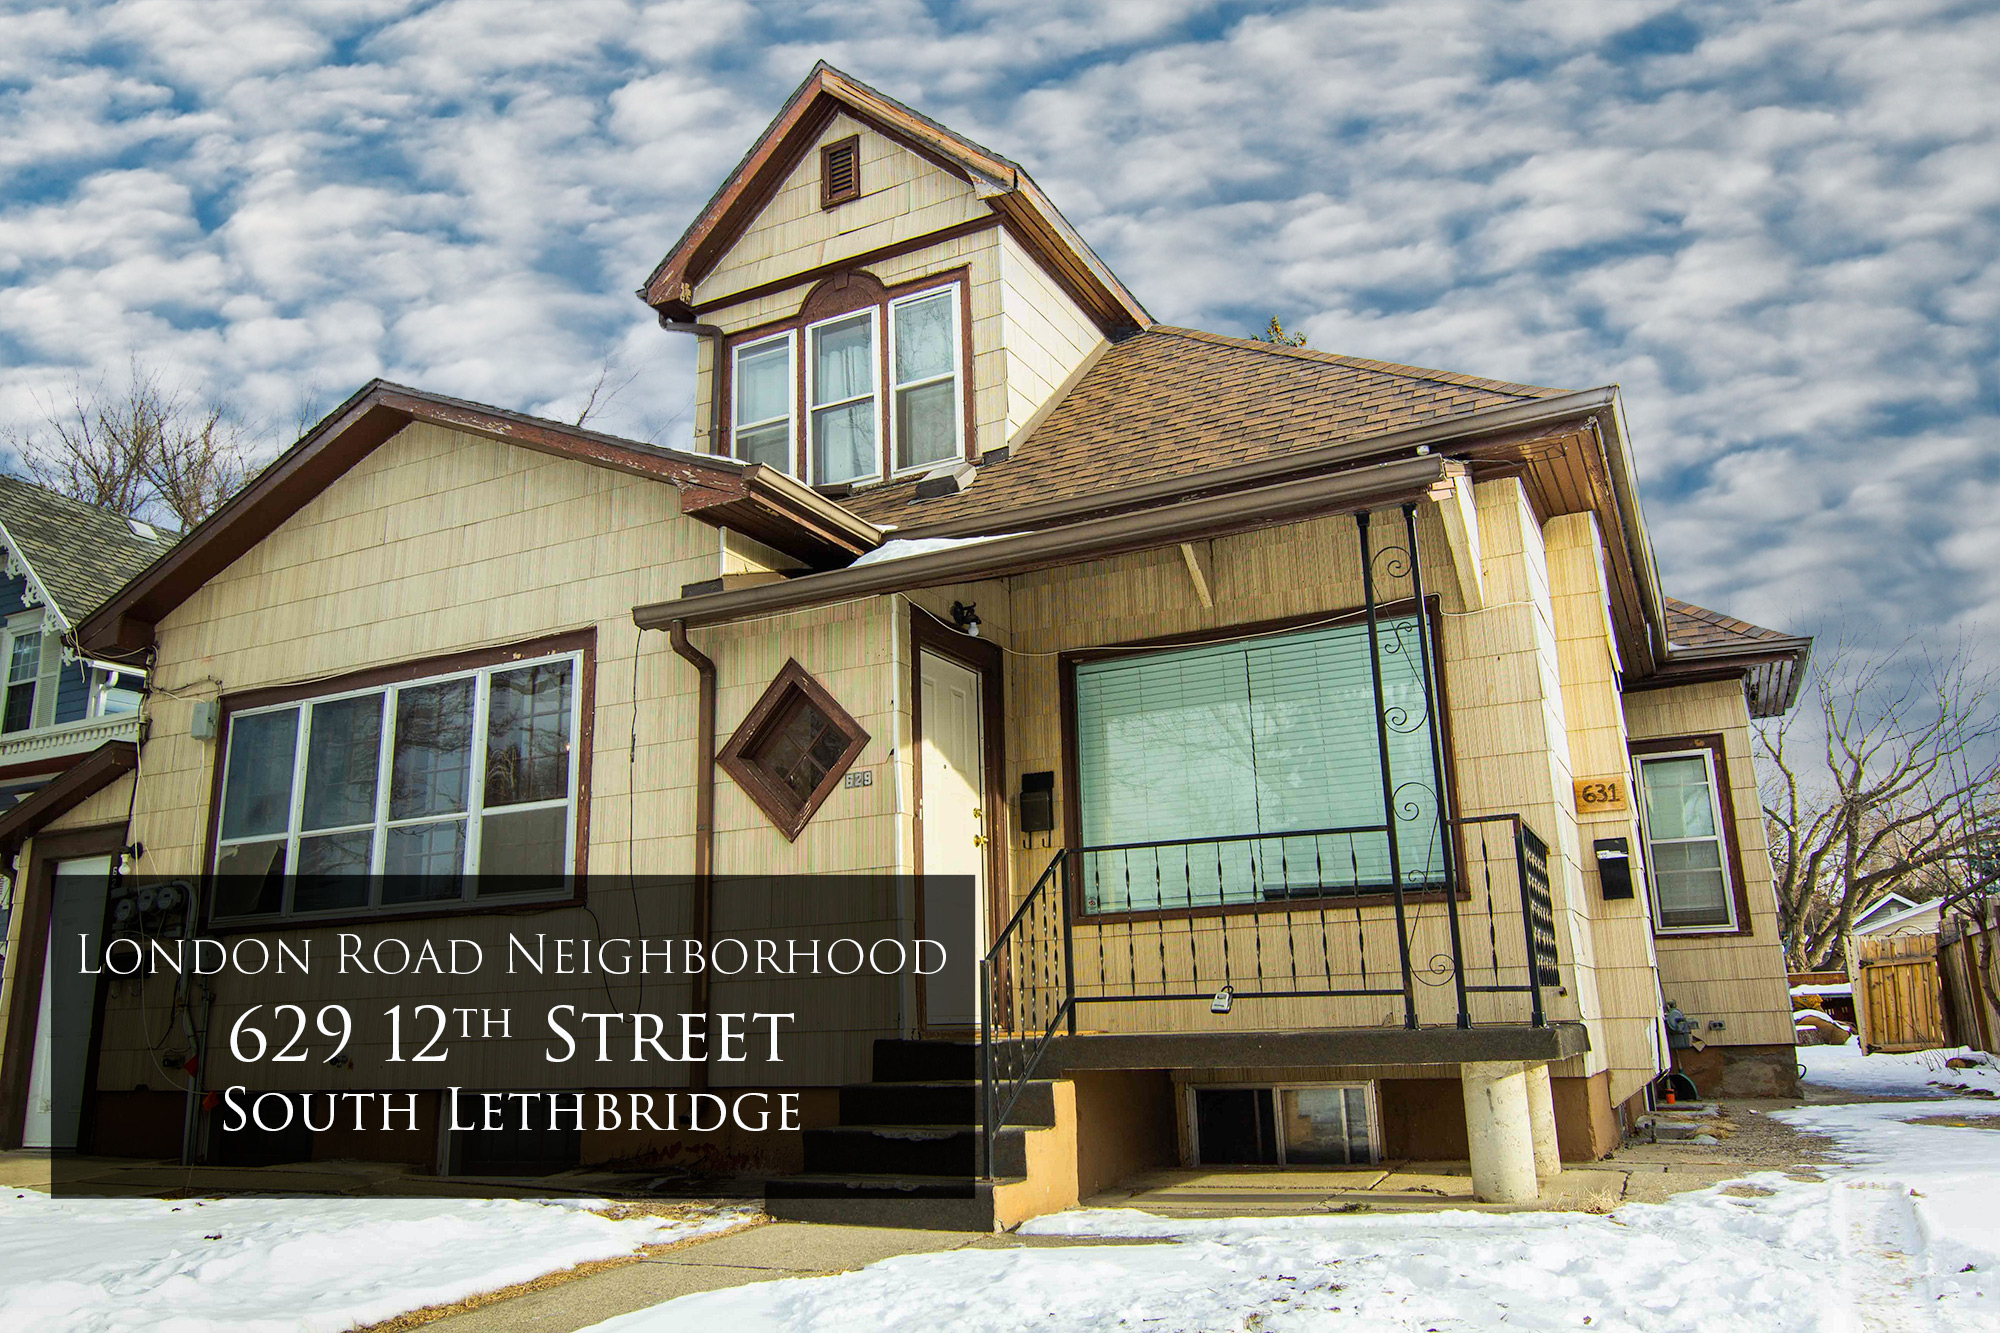 629 12 Street South Lethbridge Cover image